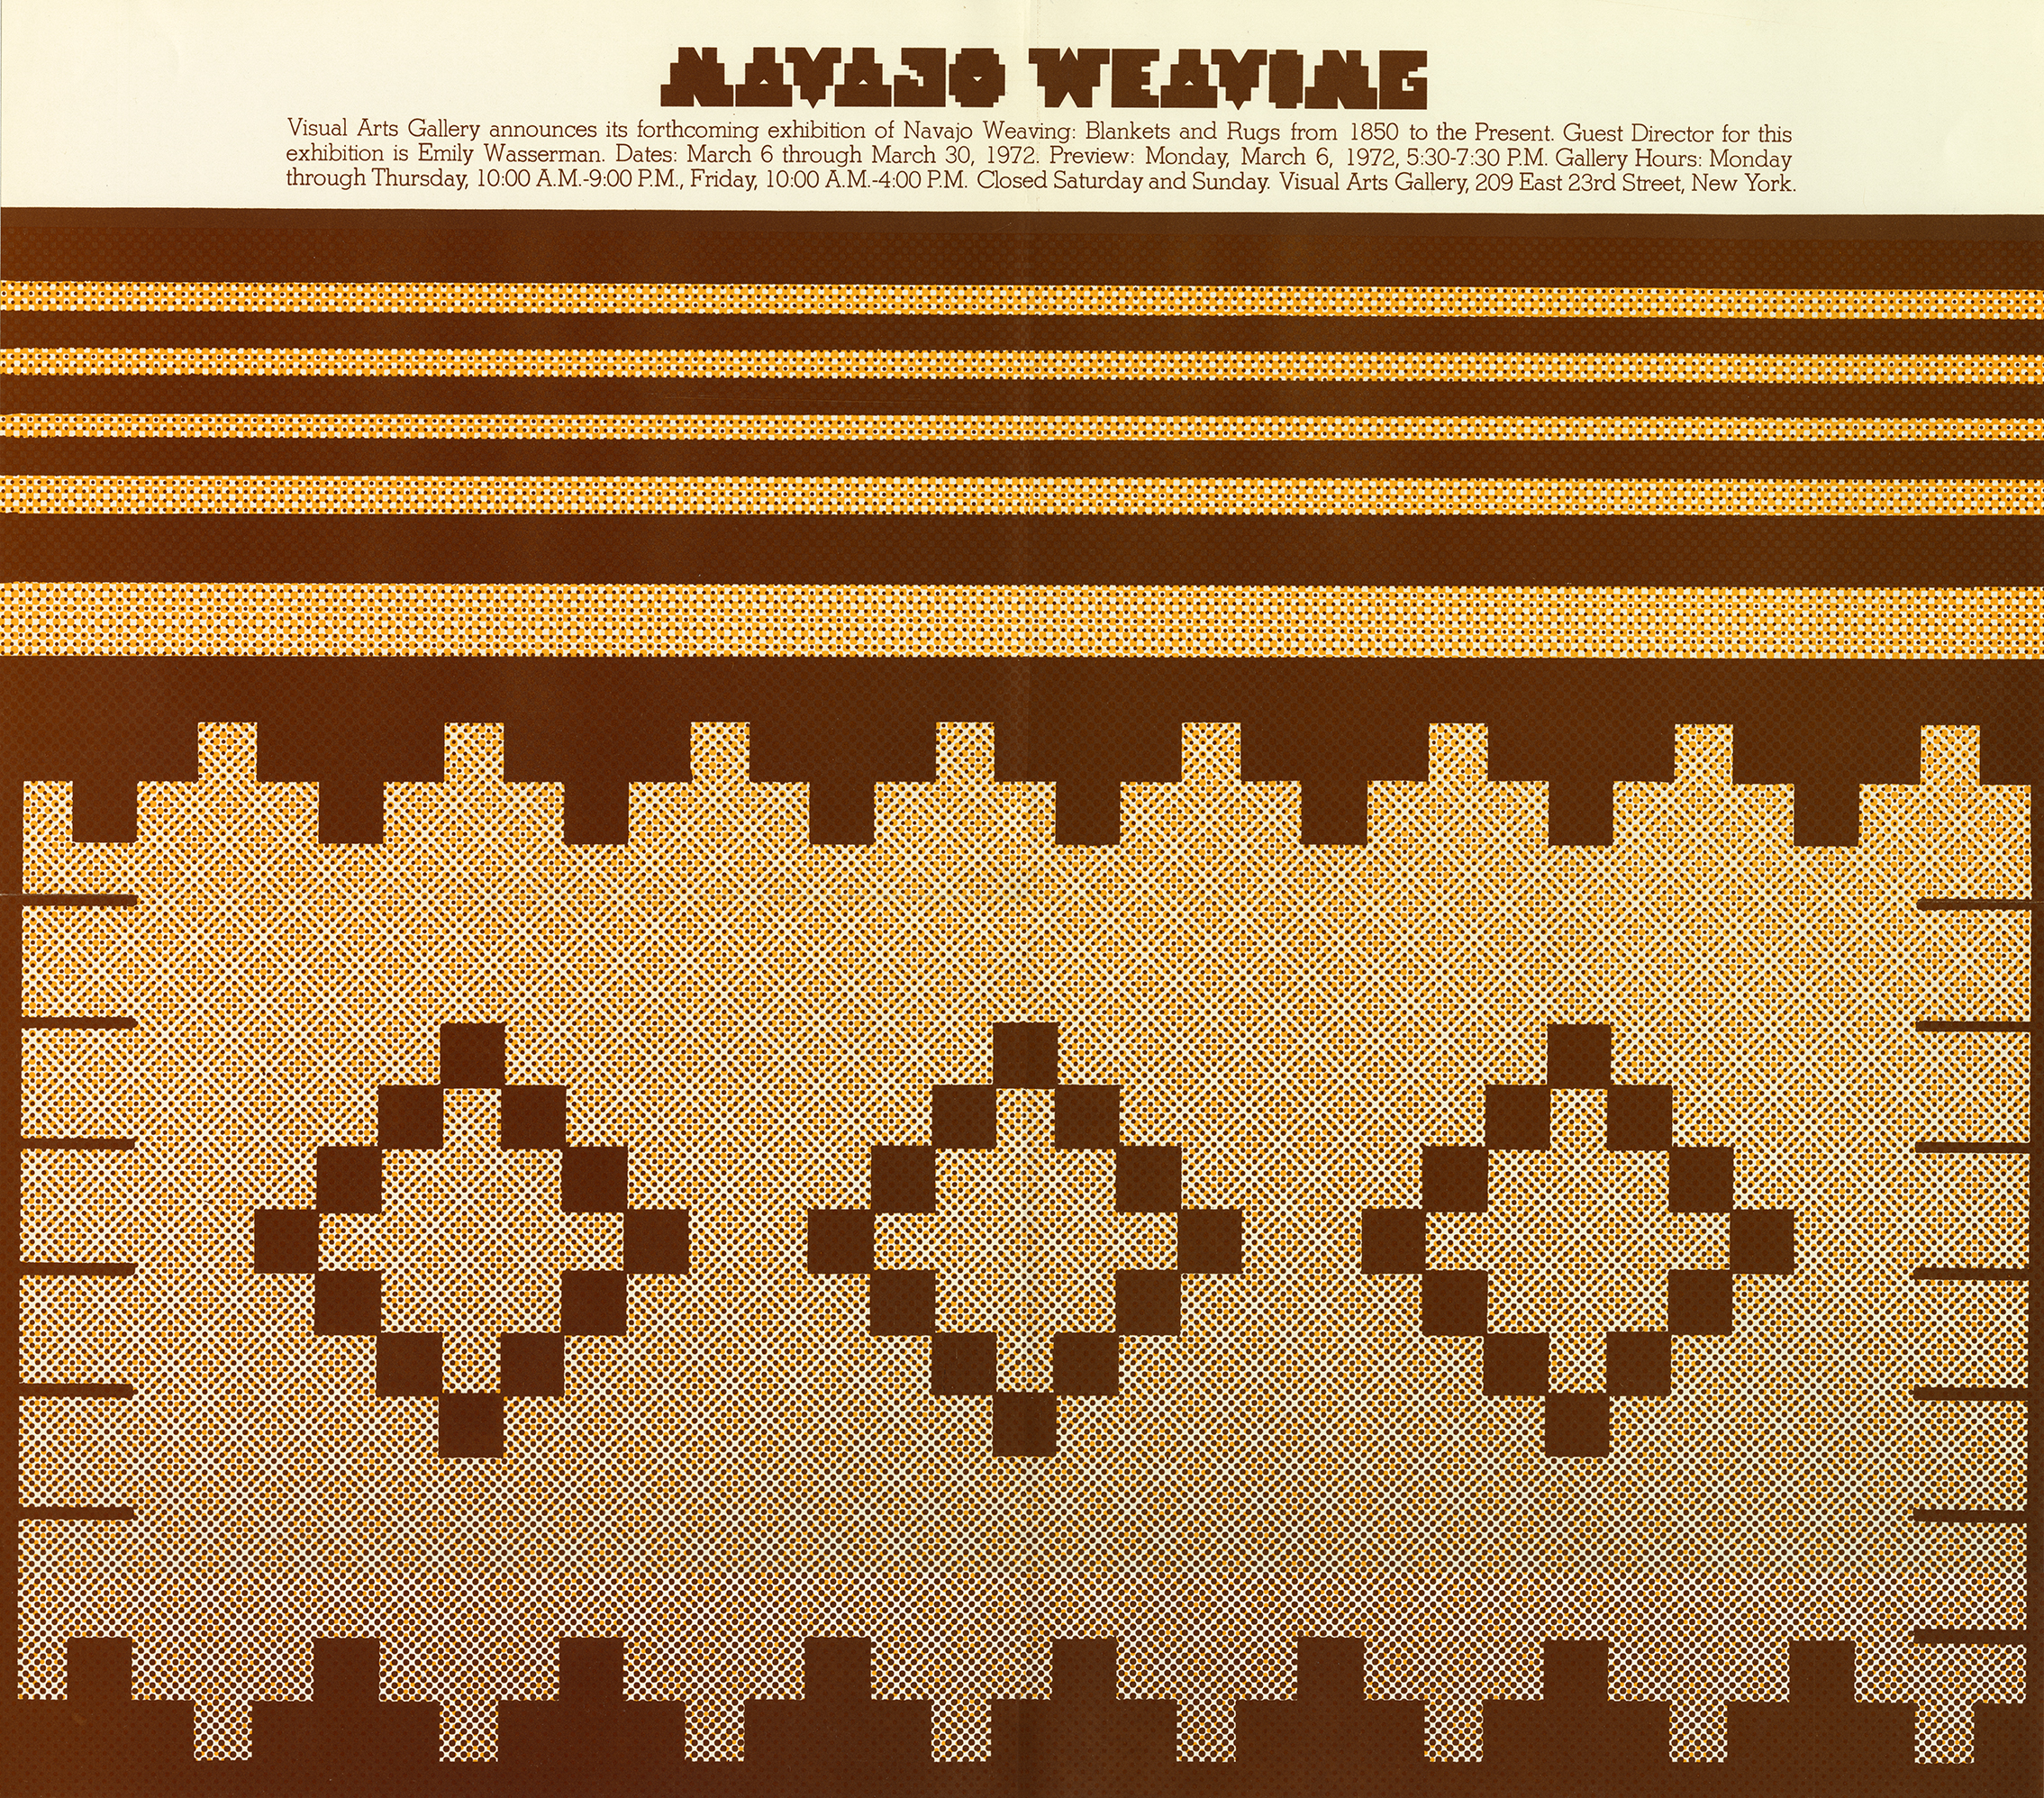 Exhibition poster with a brown and yellow a triangular pattern in the Navajo weaving tradition.